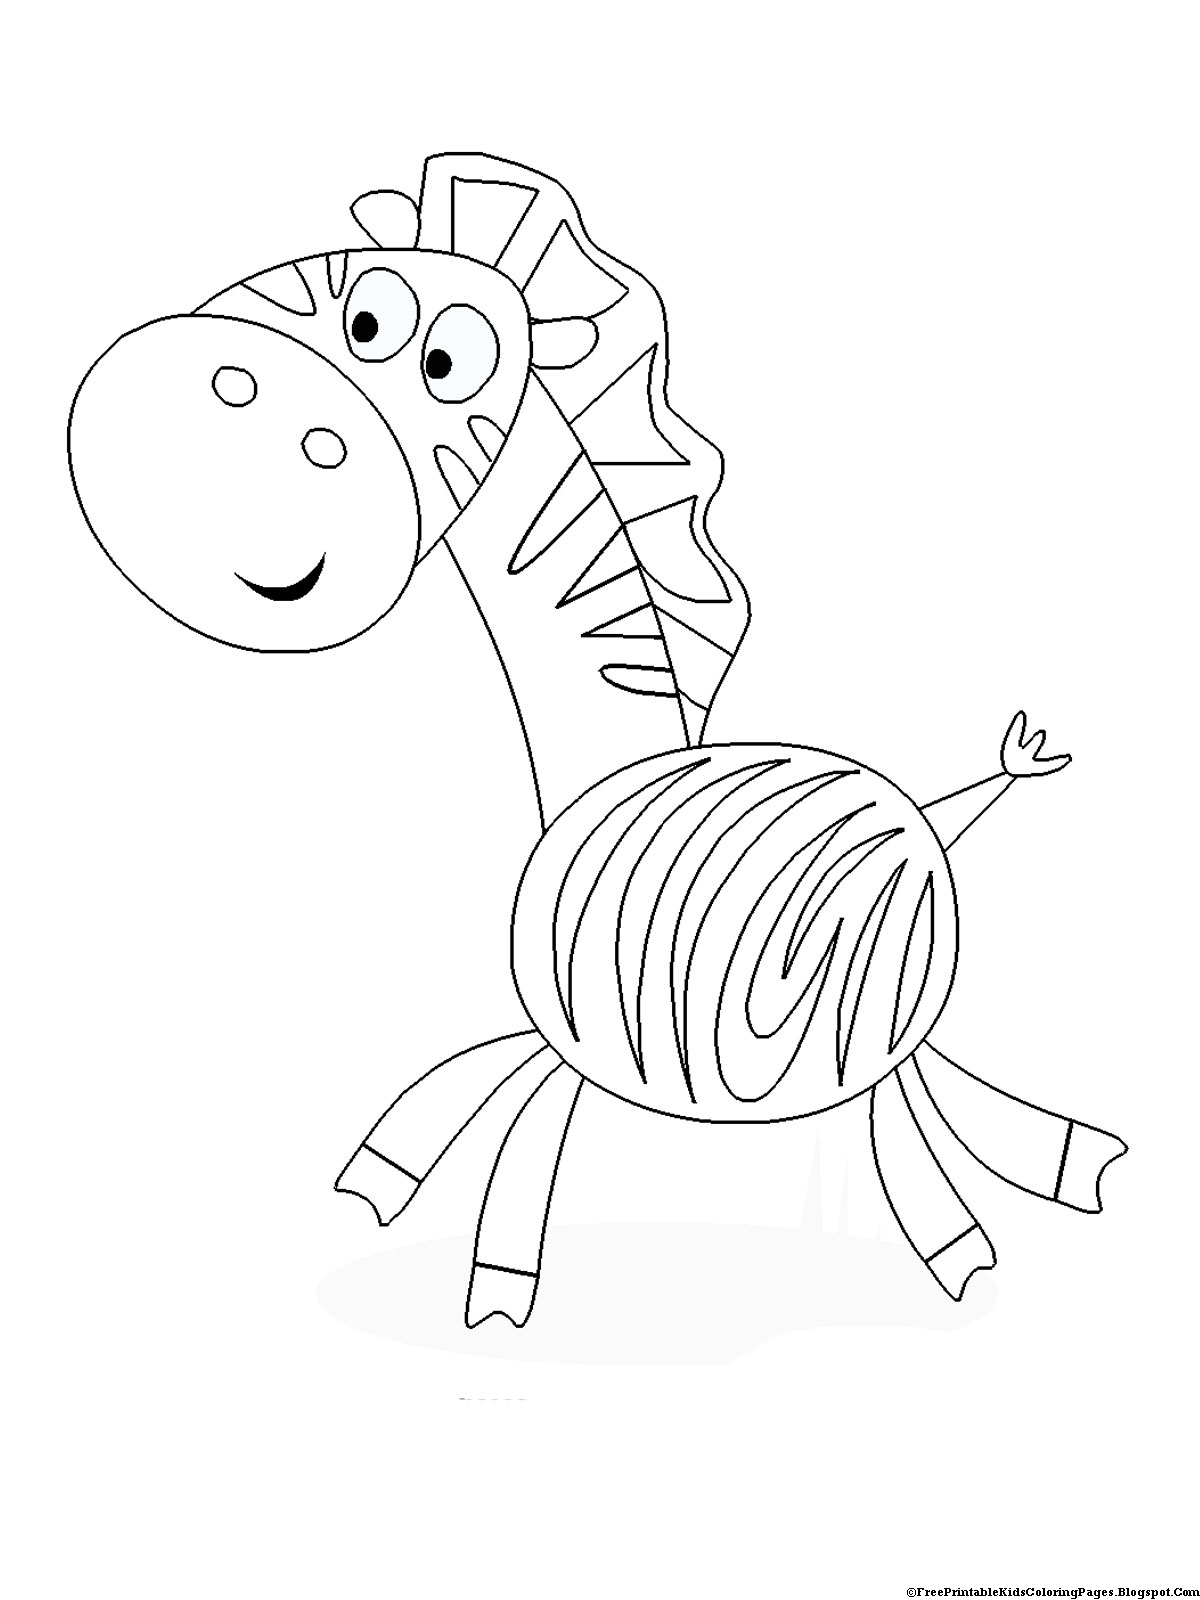 free zebra coloring pages to print marty zebra coloring pages download and print for free coloring pages free zebra to print